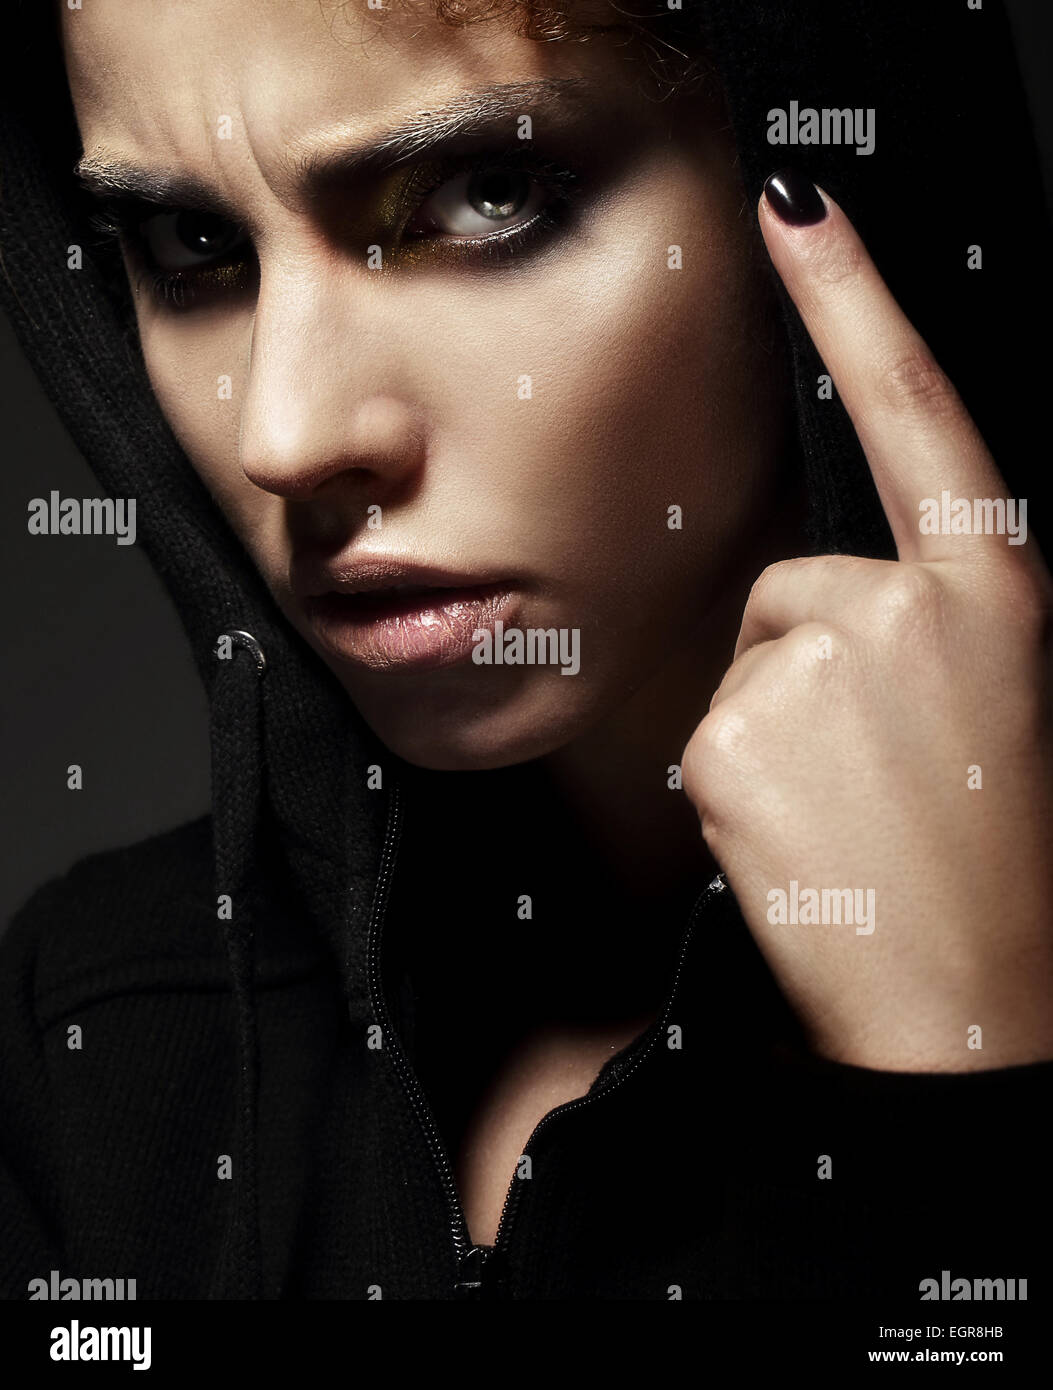 Closeup Portrait of Young Woman Strict Photo Stock